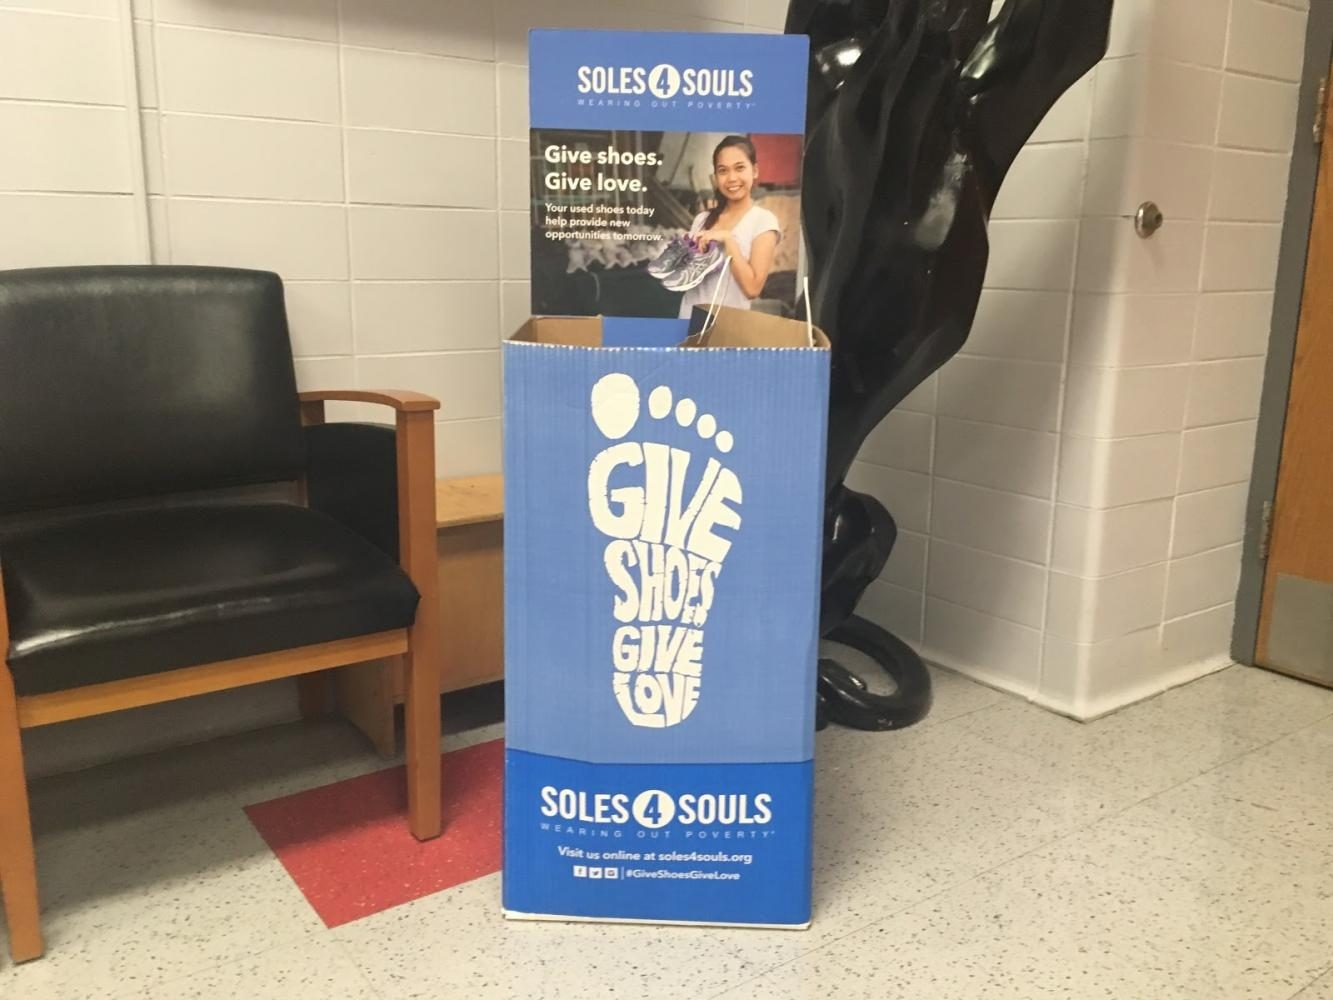 Waiting+for+footwear+in+the+Hamilton+lobby%2C+the+Soles4Souls+donation+box+is+set-up+to+collect+unused+shoes+to+help+those+in+need.+Students+in+the+local+branch+hope+to+raise+15%2C000+shoes+by+the+end+of+October.